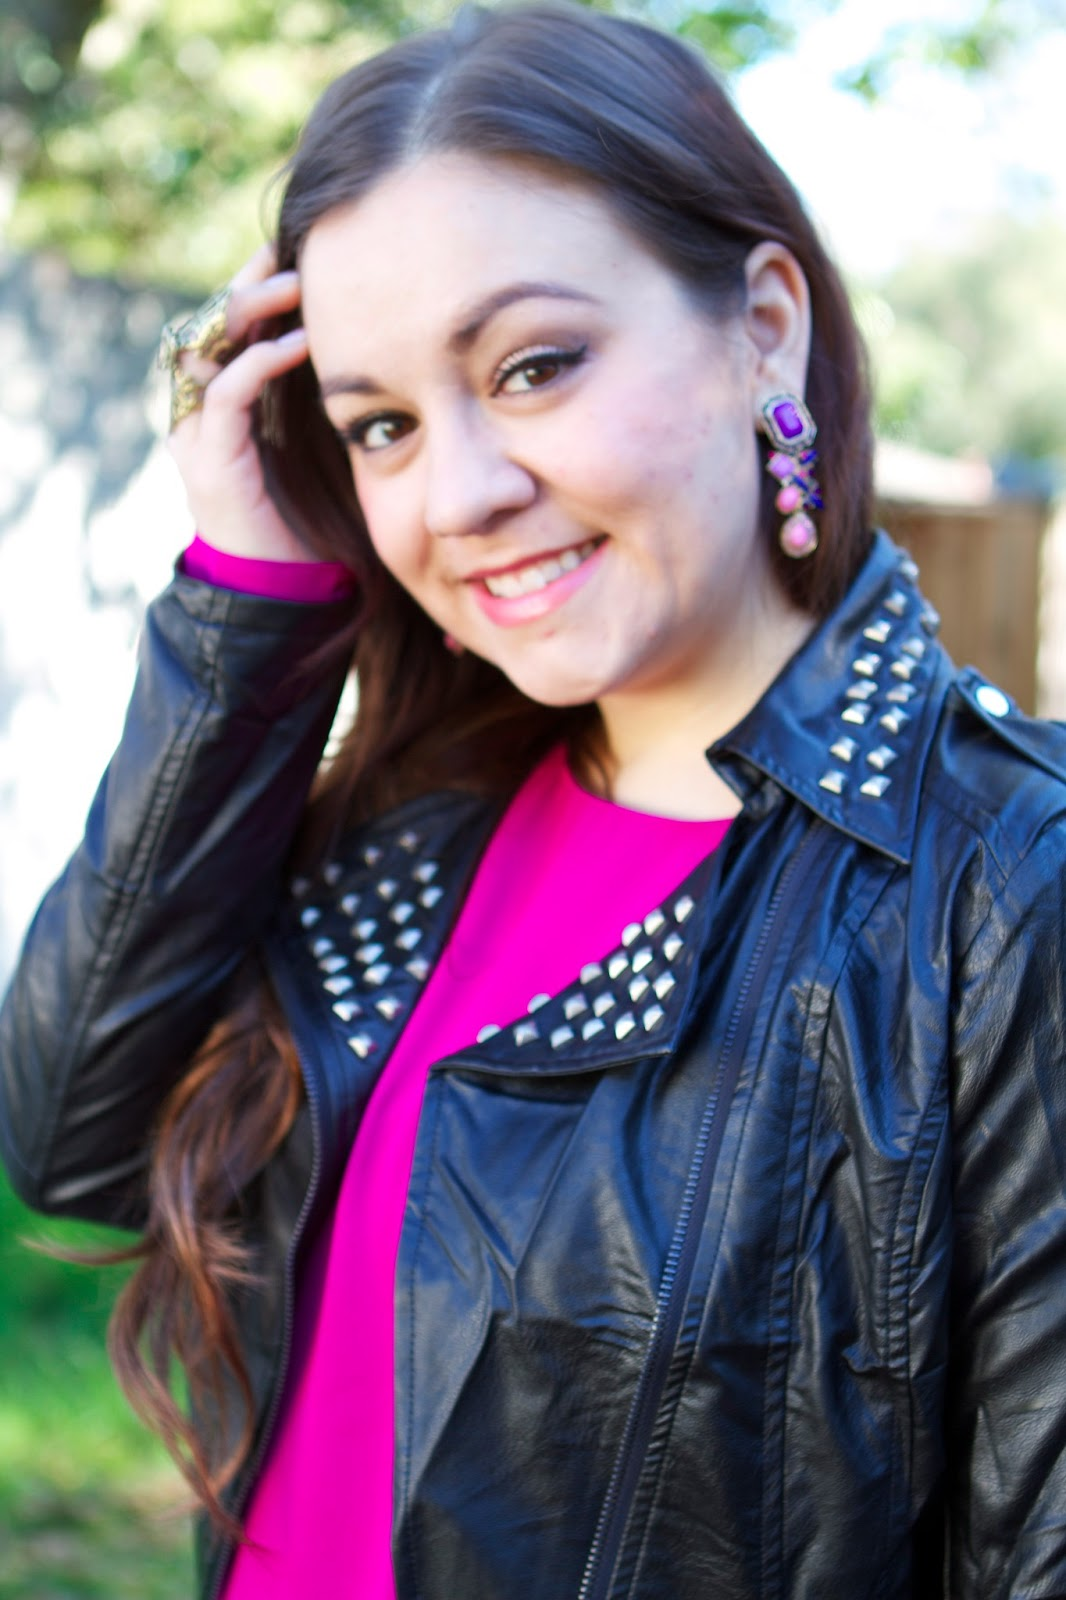 SF Bay Area Fashion & Style Blog - Studded moto jacket, leather pants, magenta top, purple stone earrings, shoe jewelry - Blue Vanilla + Red Stripes Boutique